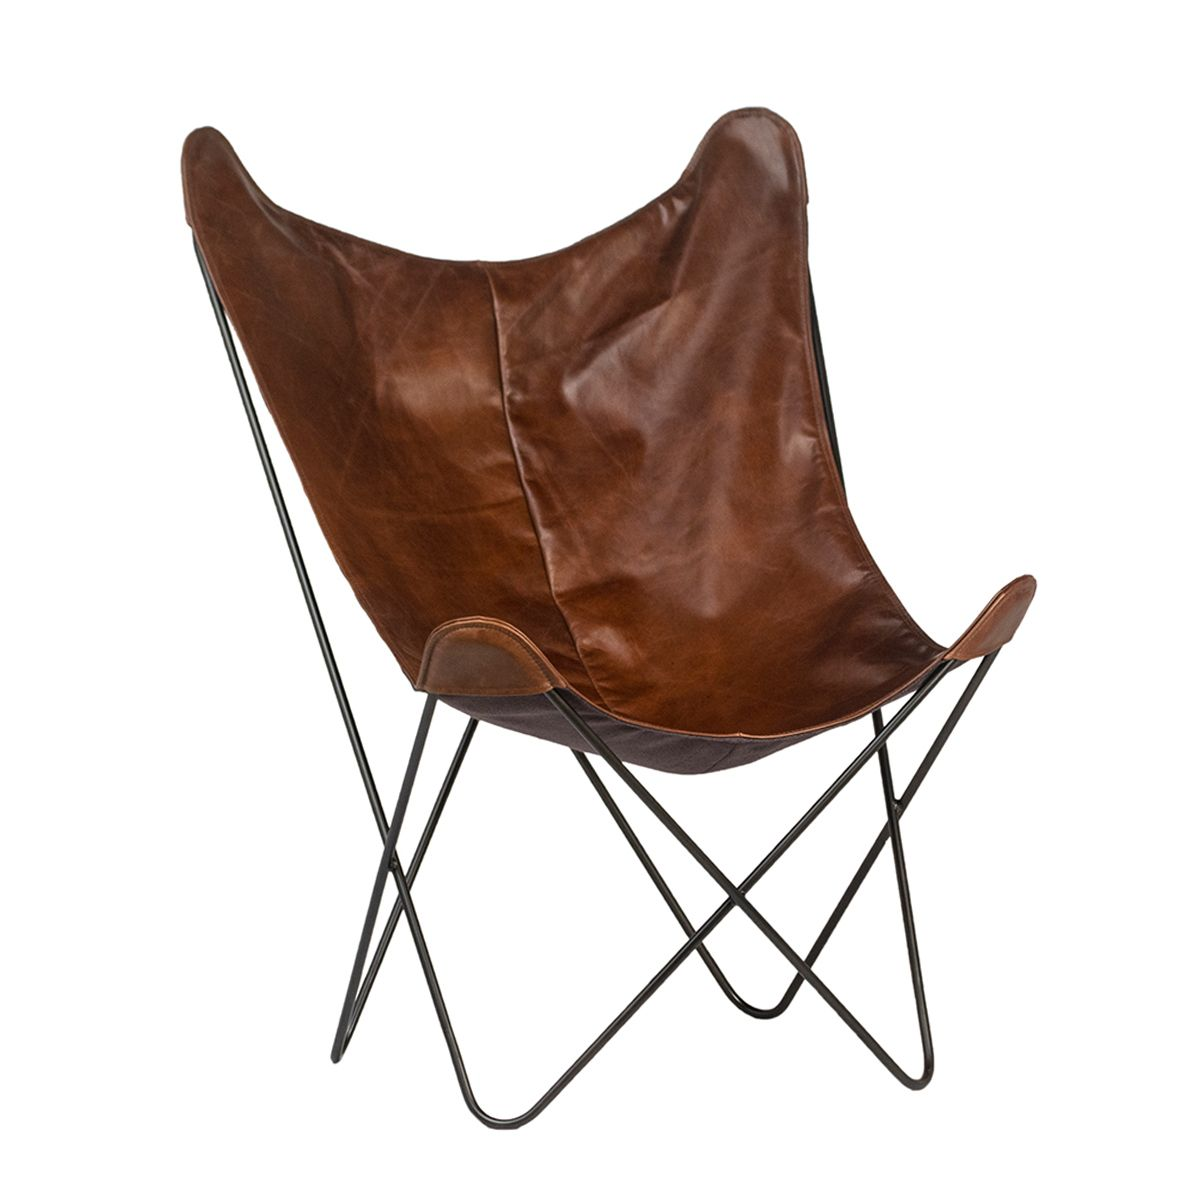 340d5b42b2 Brown leather scoop chair with black iron frame. Modern